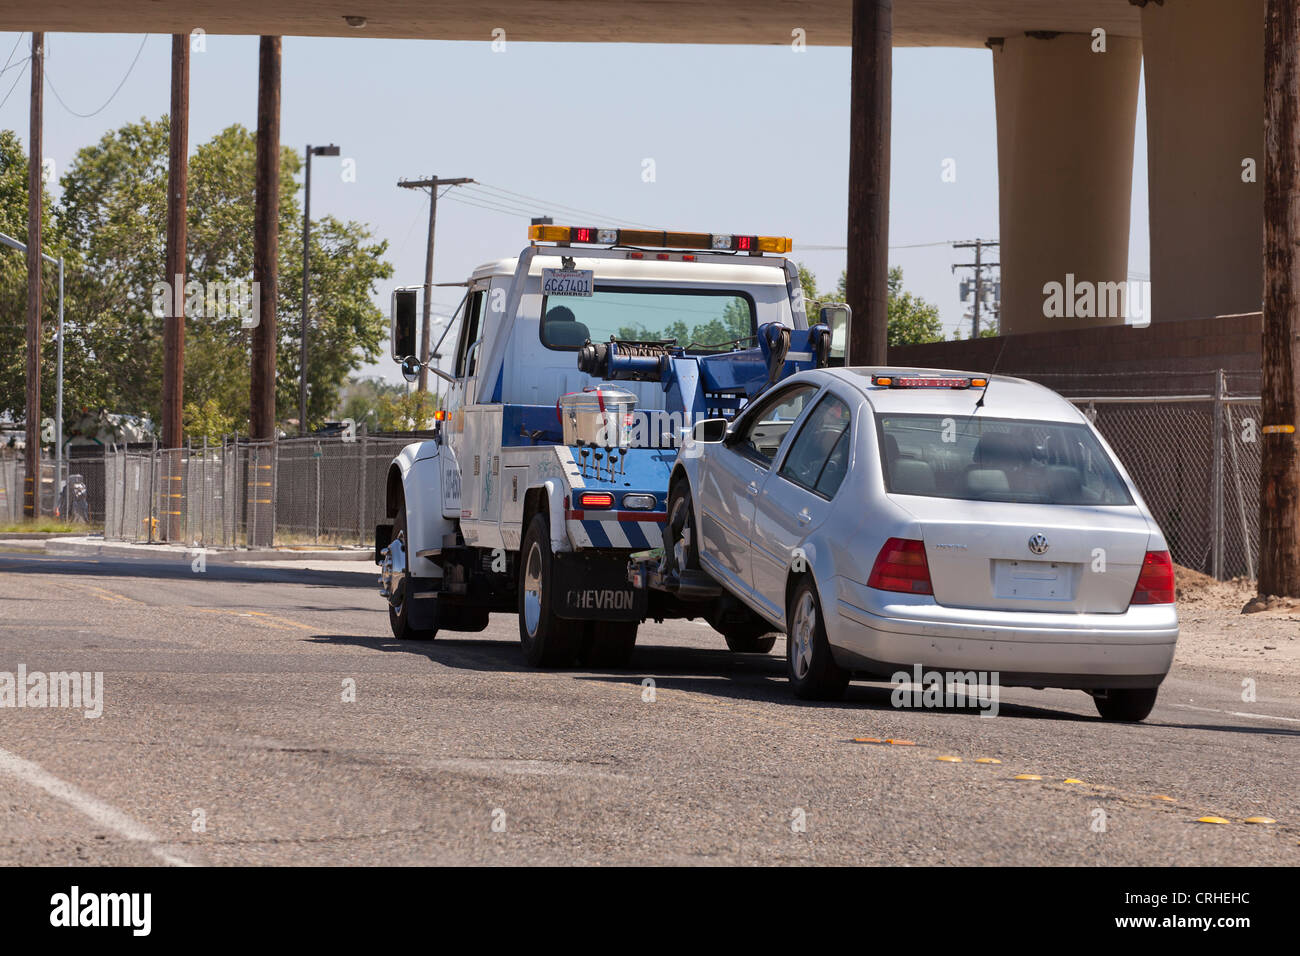 Car Being Towed High Resolution Stock Photography and Images - Alamy